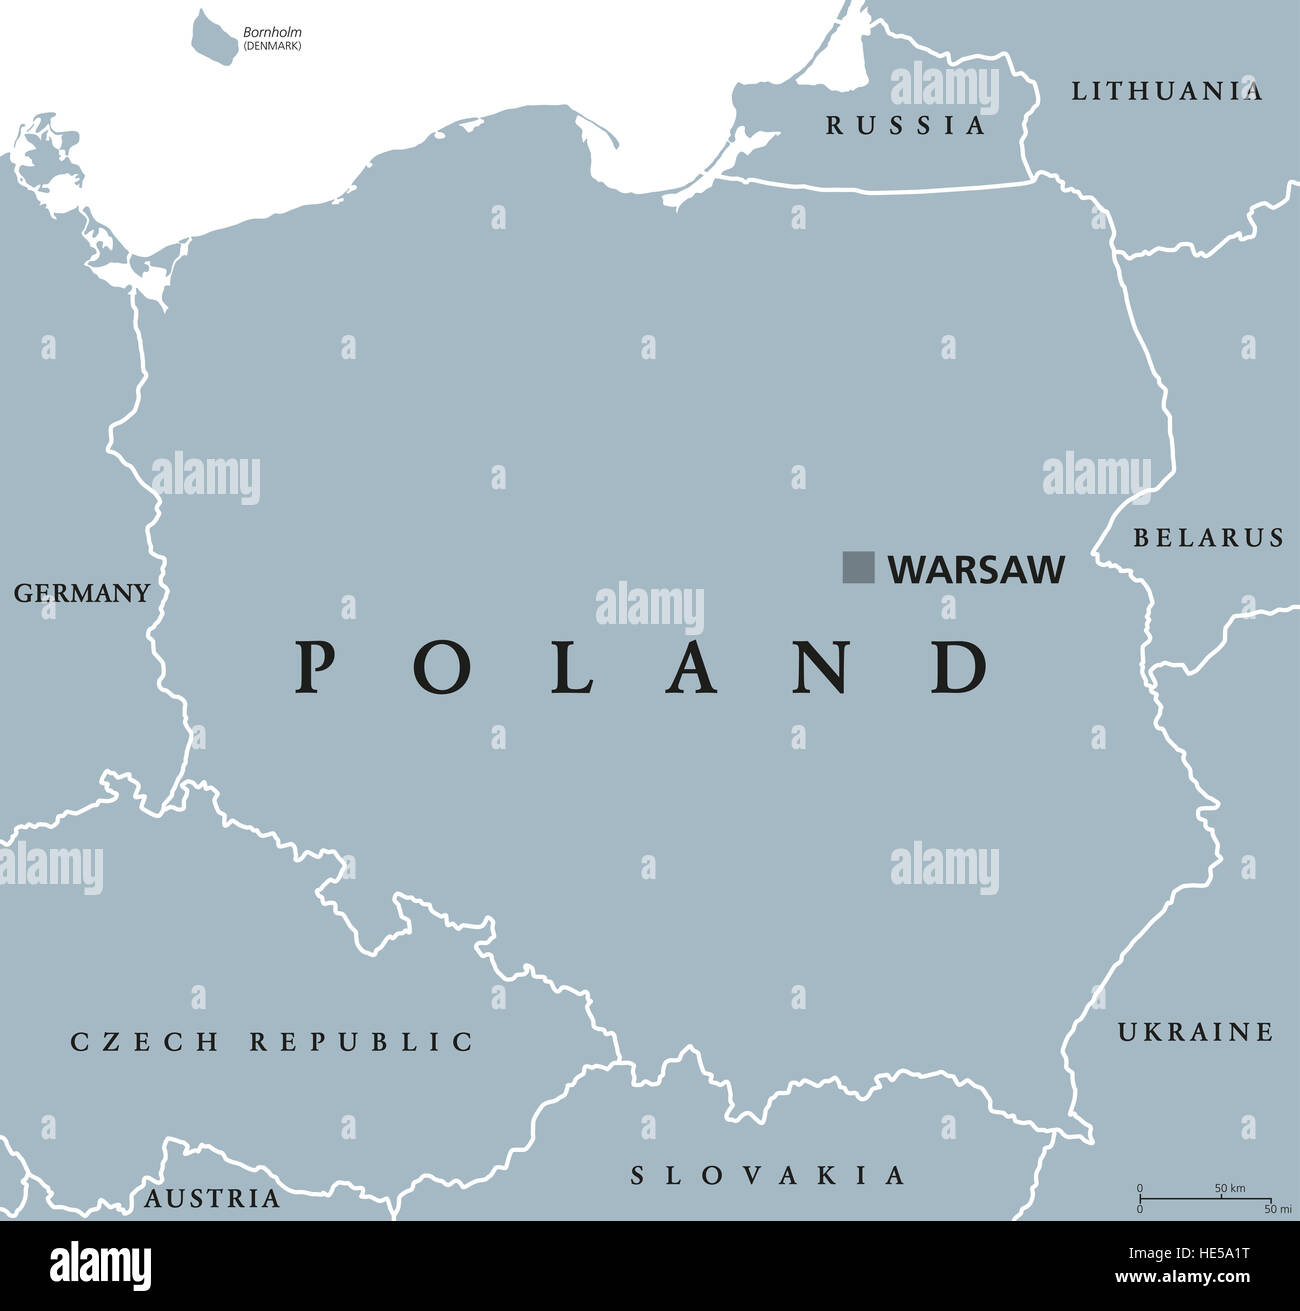 Poland Political Map With Capital Warsaw And Neighbor Countries - Poland political map